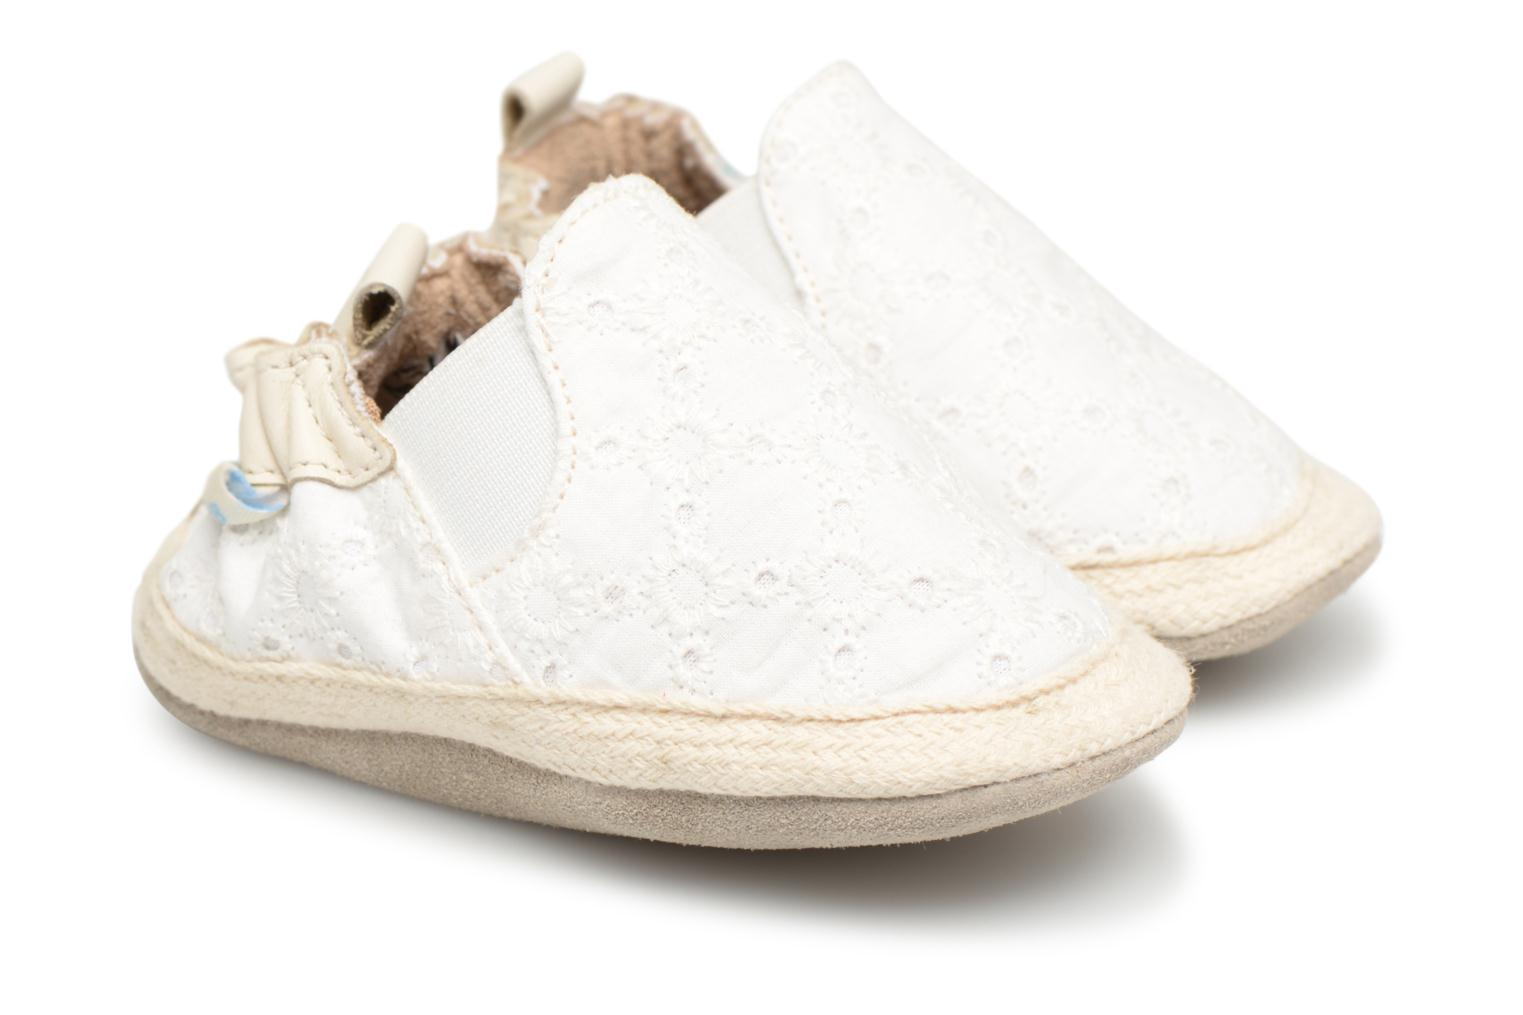 Sarenza Wear Chaussons Coconning Couette Fille Rose poids Blanco hOxKP